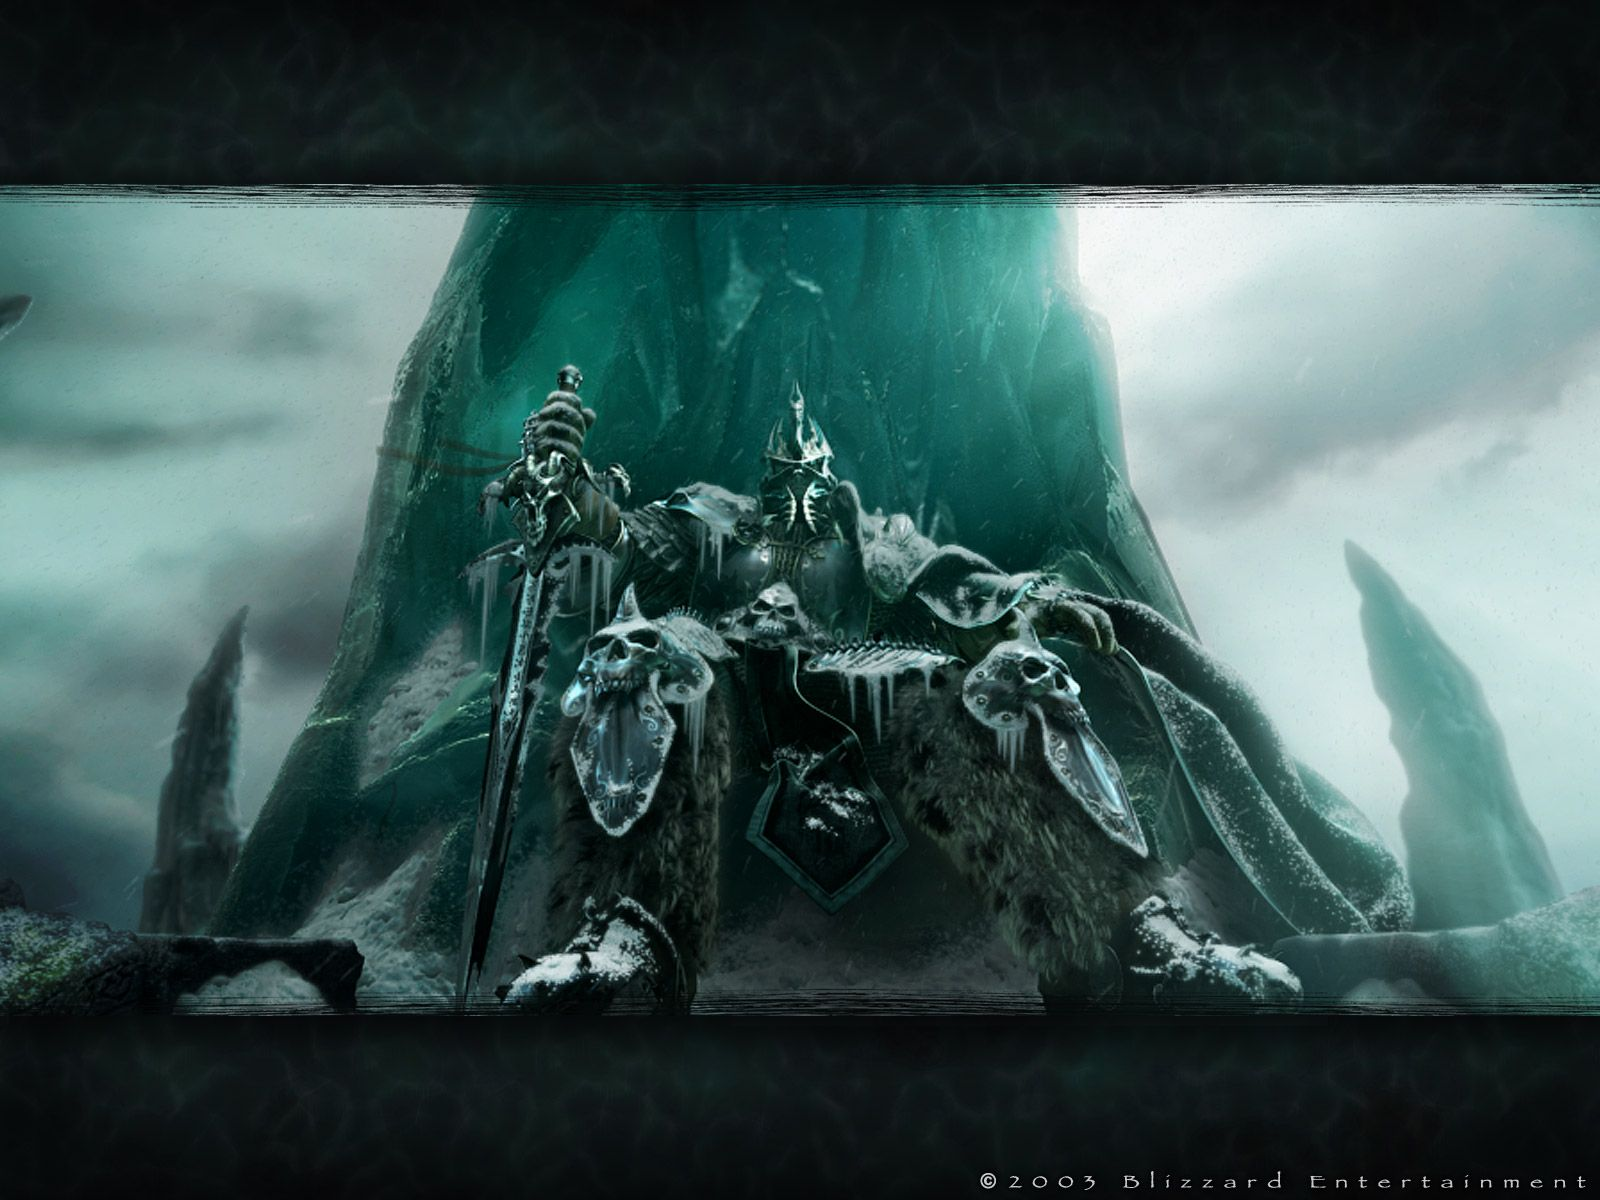 Video Game Warcraft Arthas Menethil Wallpaper Lich King